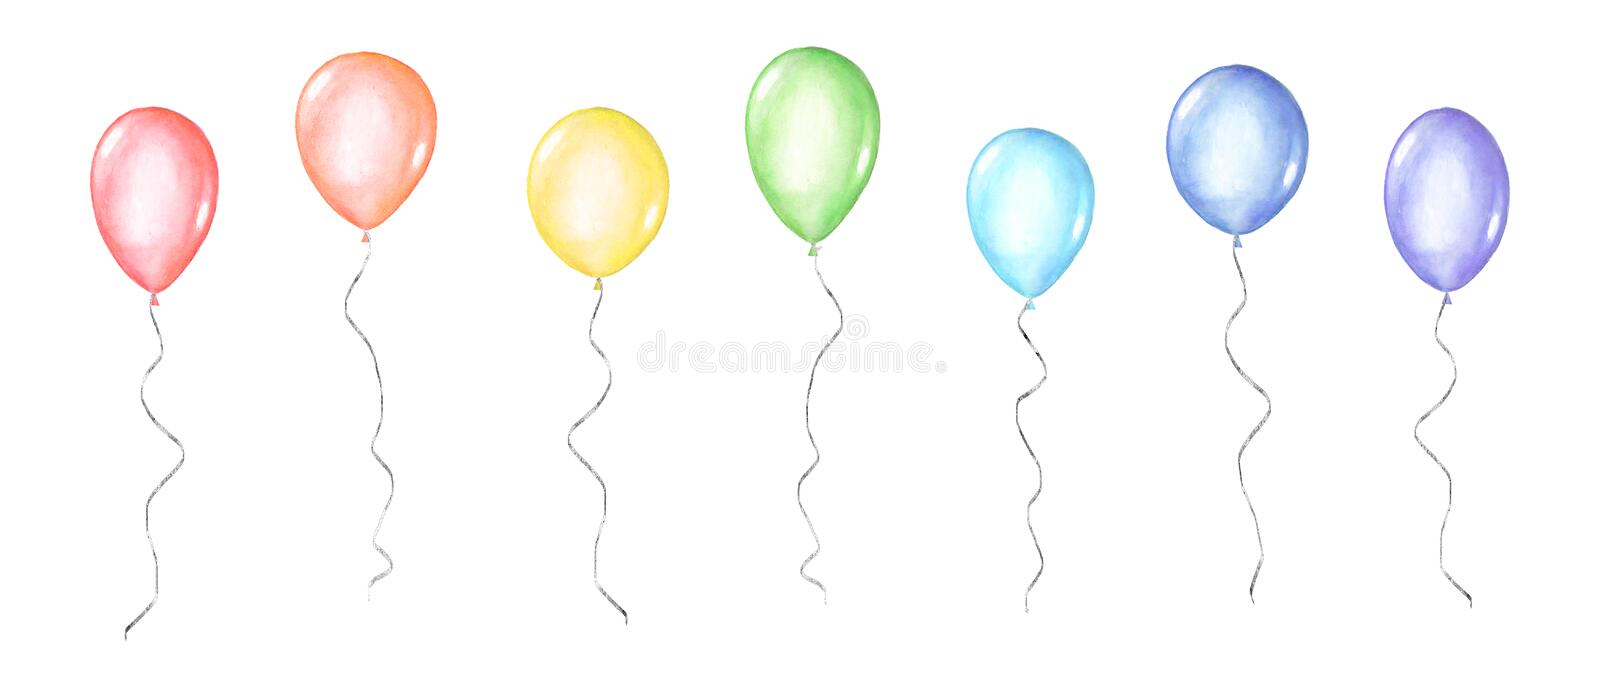 Set of coloful watercolor balloons isolated on white background. Set of colorful rainbow colors watercolor happy holiday glossy helium air flying balloons stock illustration